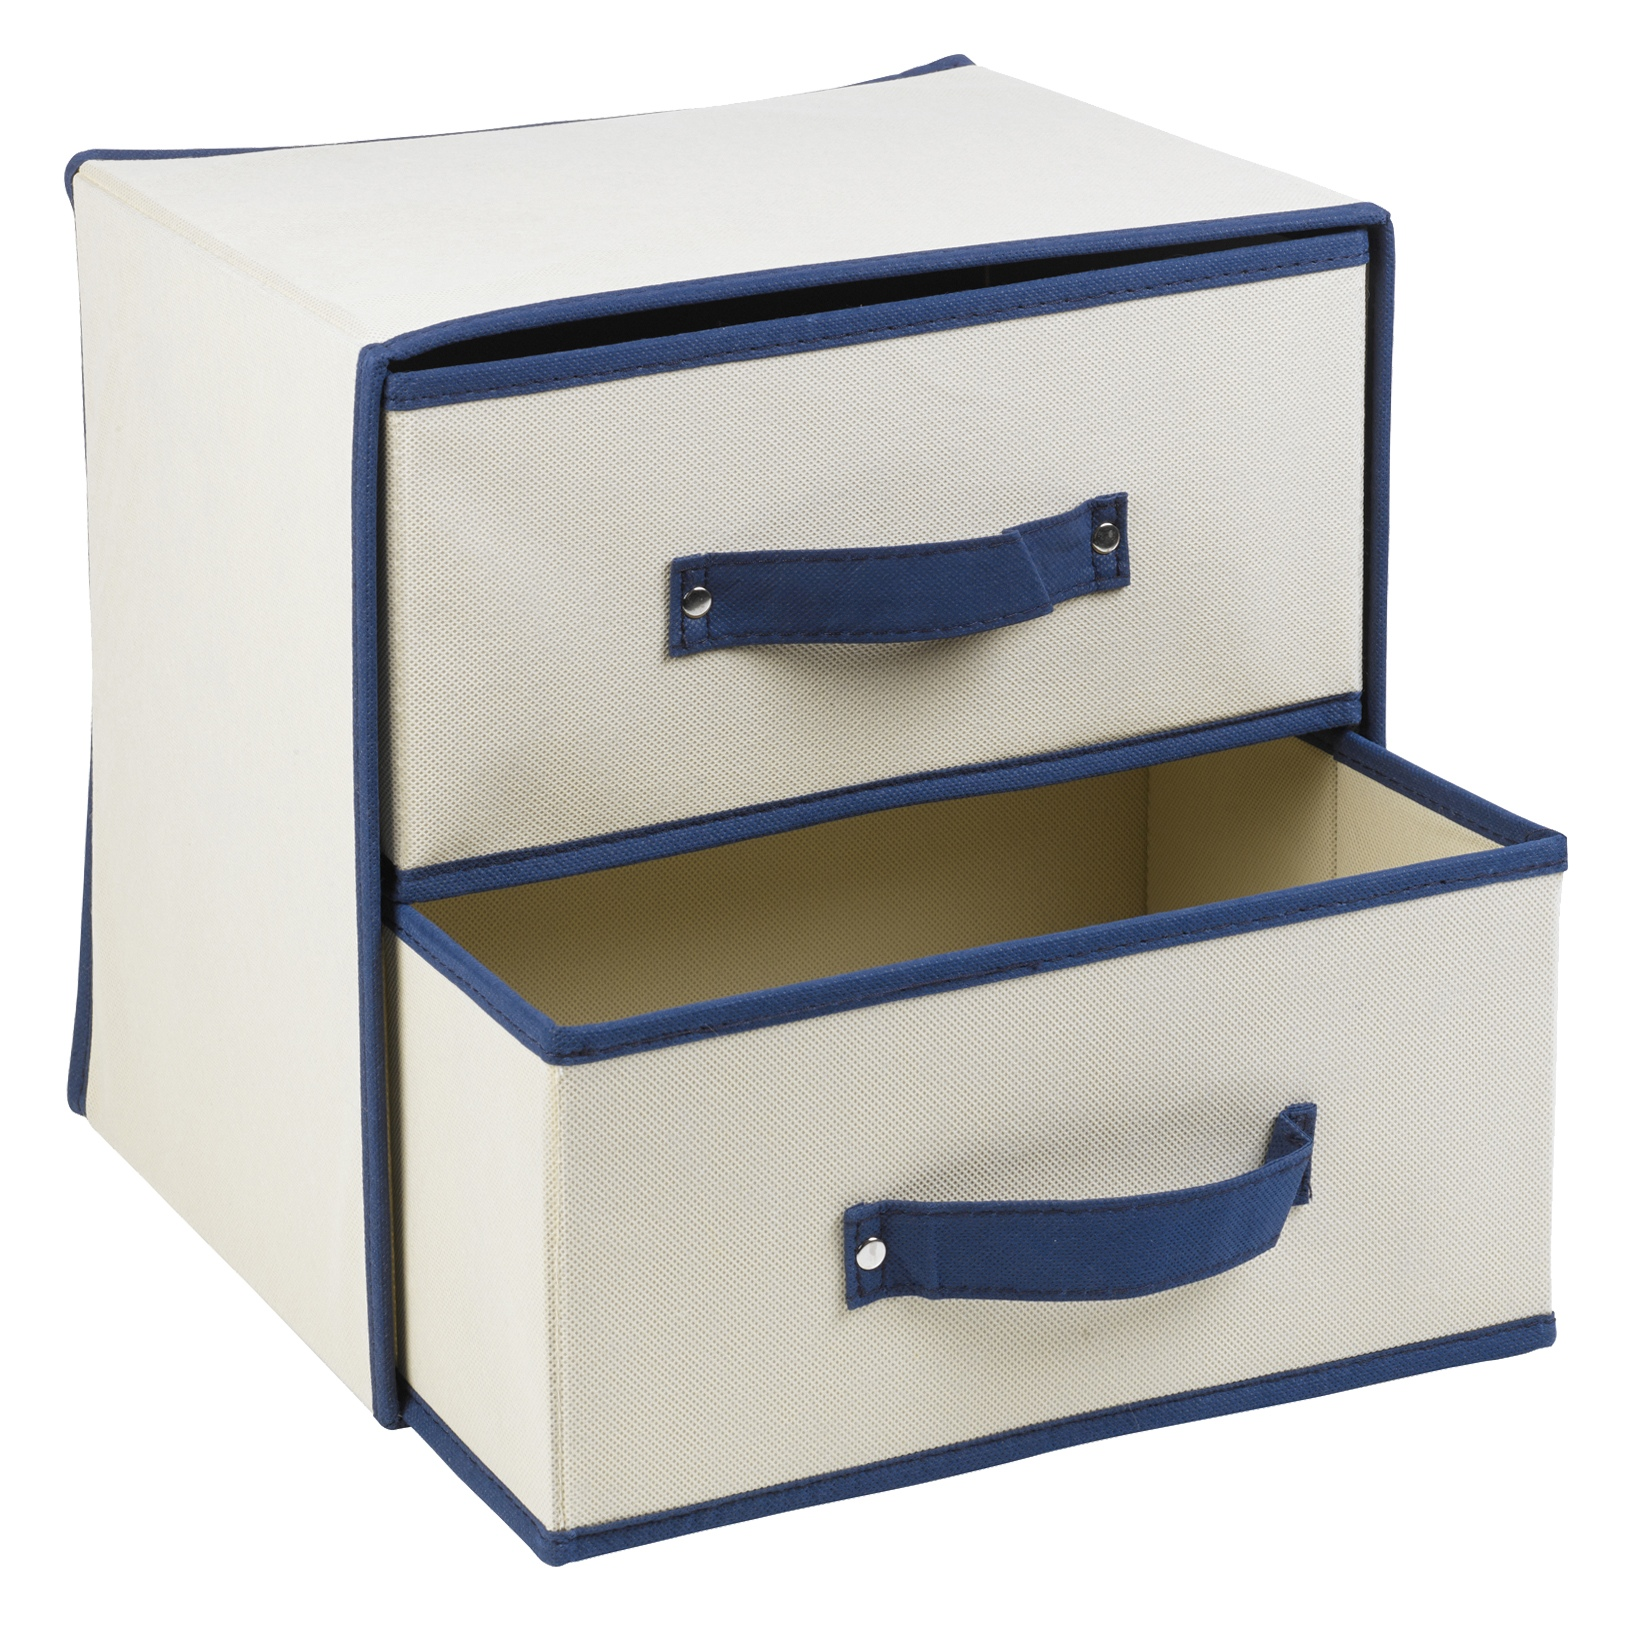 New Non Woven Fabric Folding Underwear Storage Box Bedroom: Collapsible Fabric 2 Drawer Storage Boxes Containers Bits